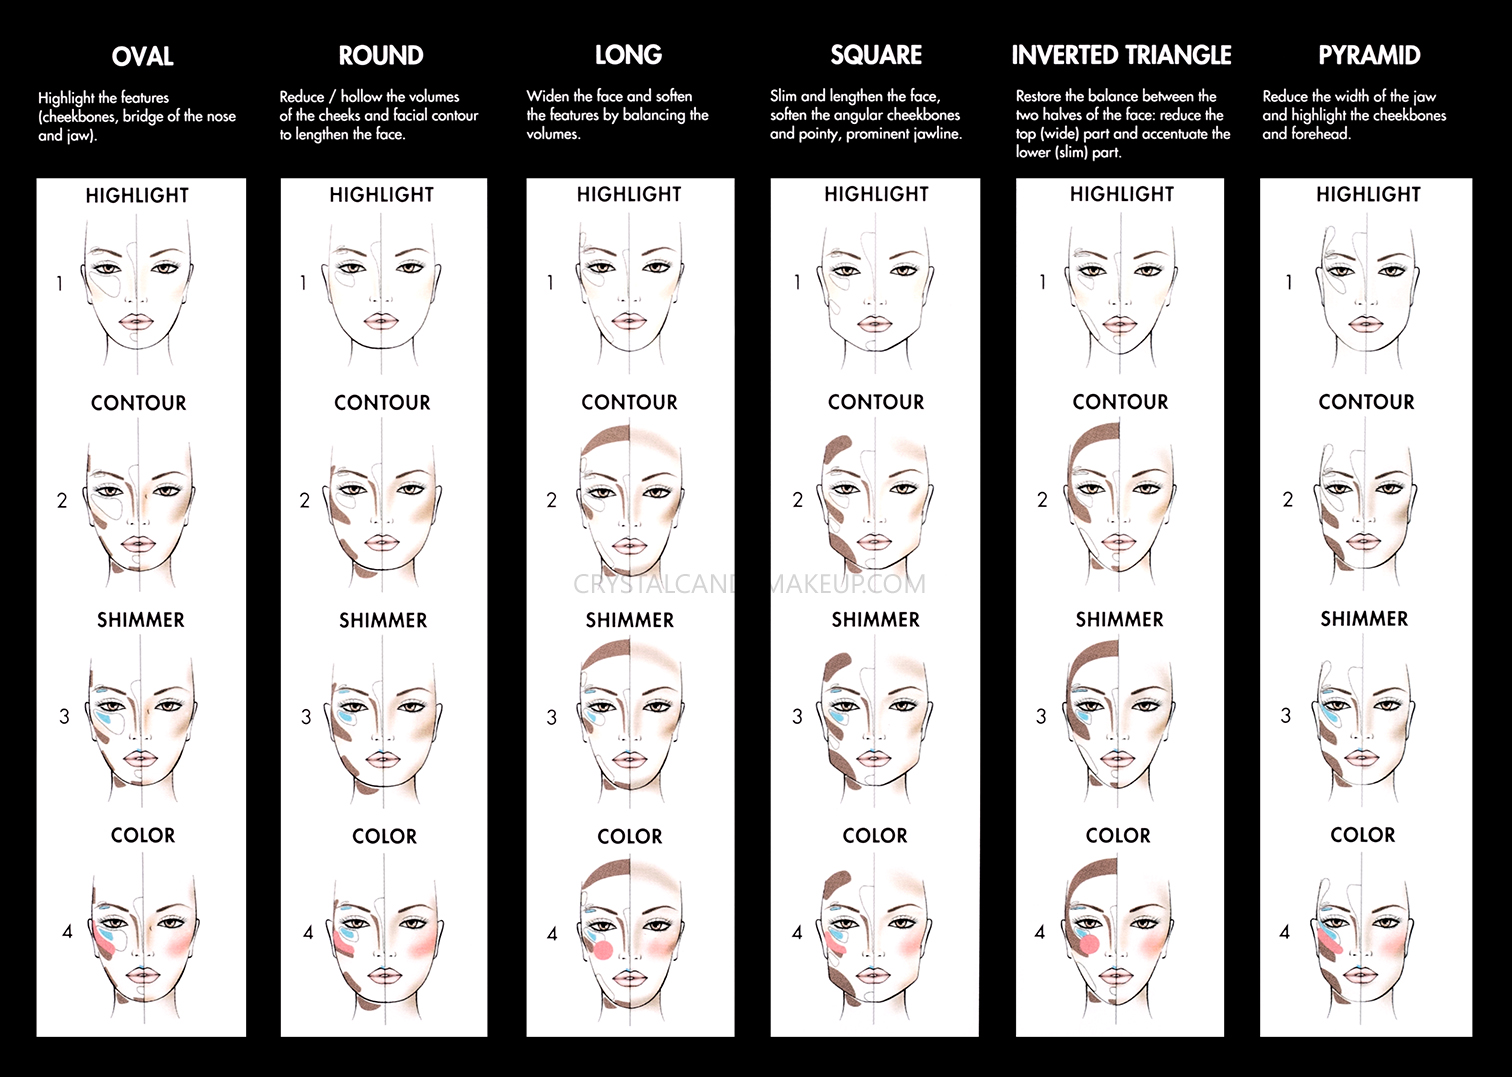 Make Up For Ever Pro Sculpting Palette Face Shapes Contouring How To